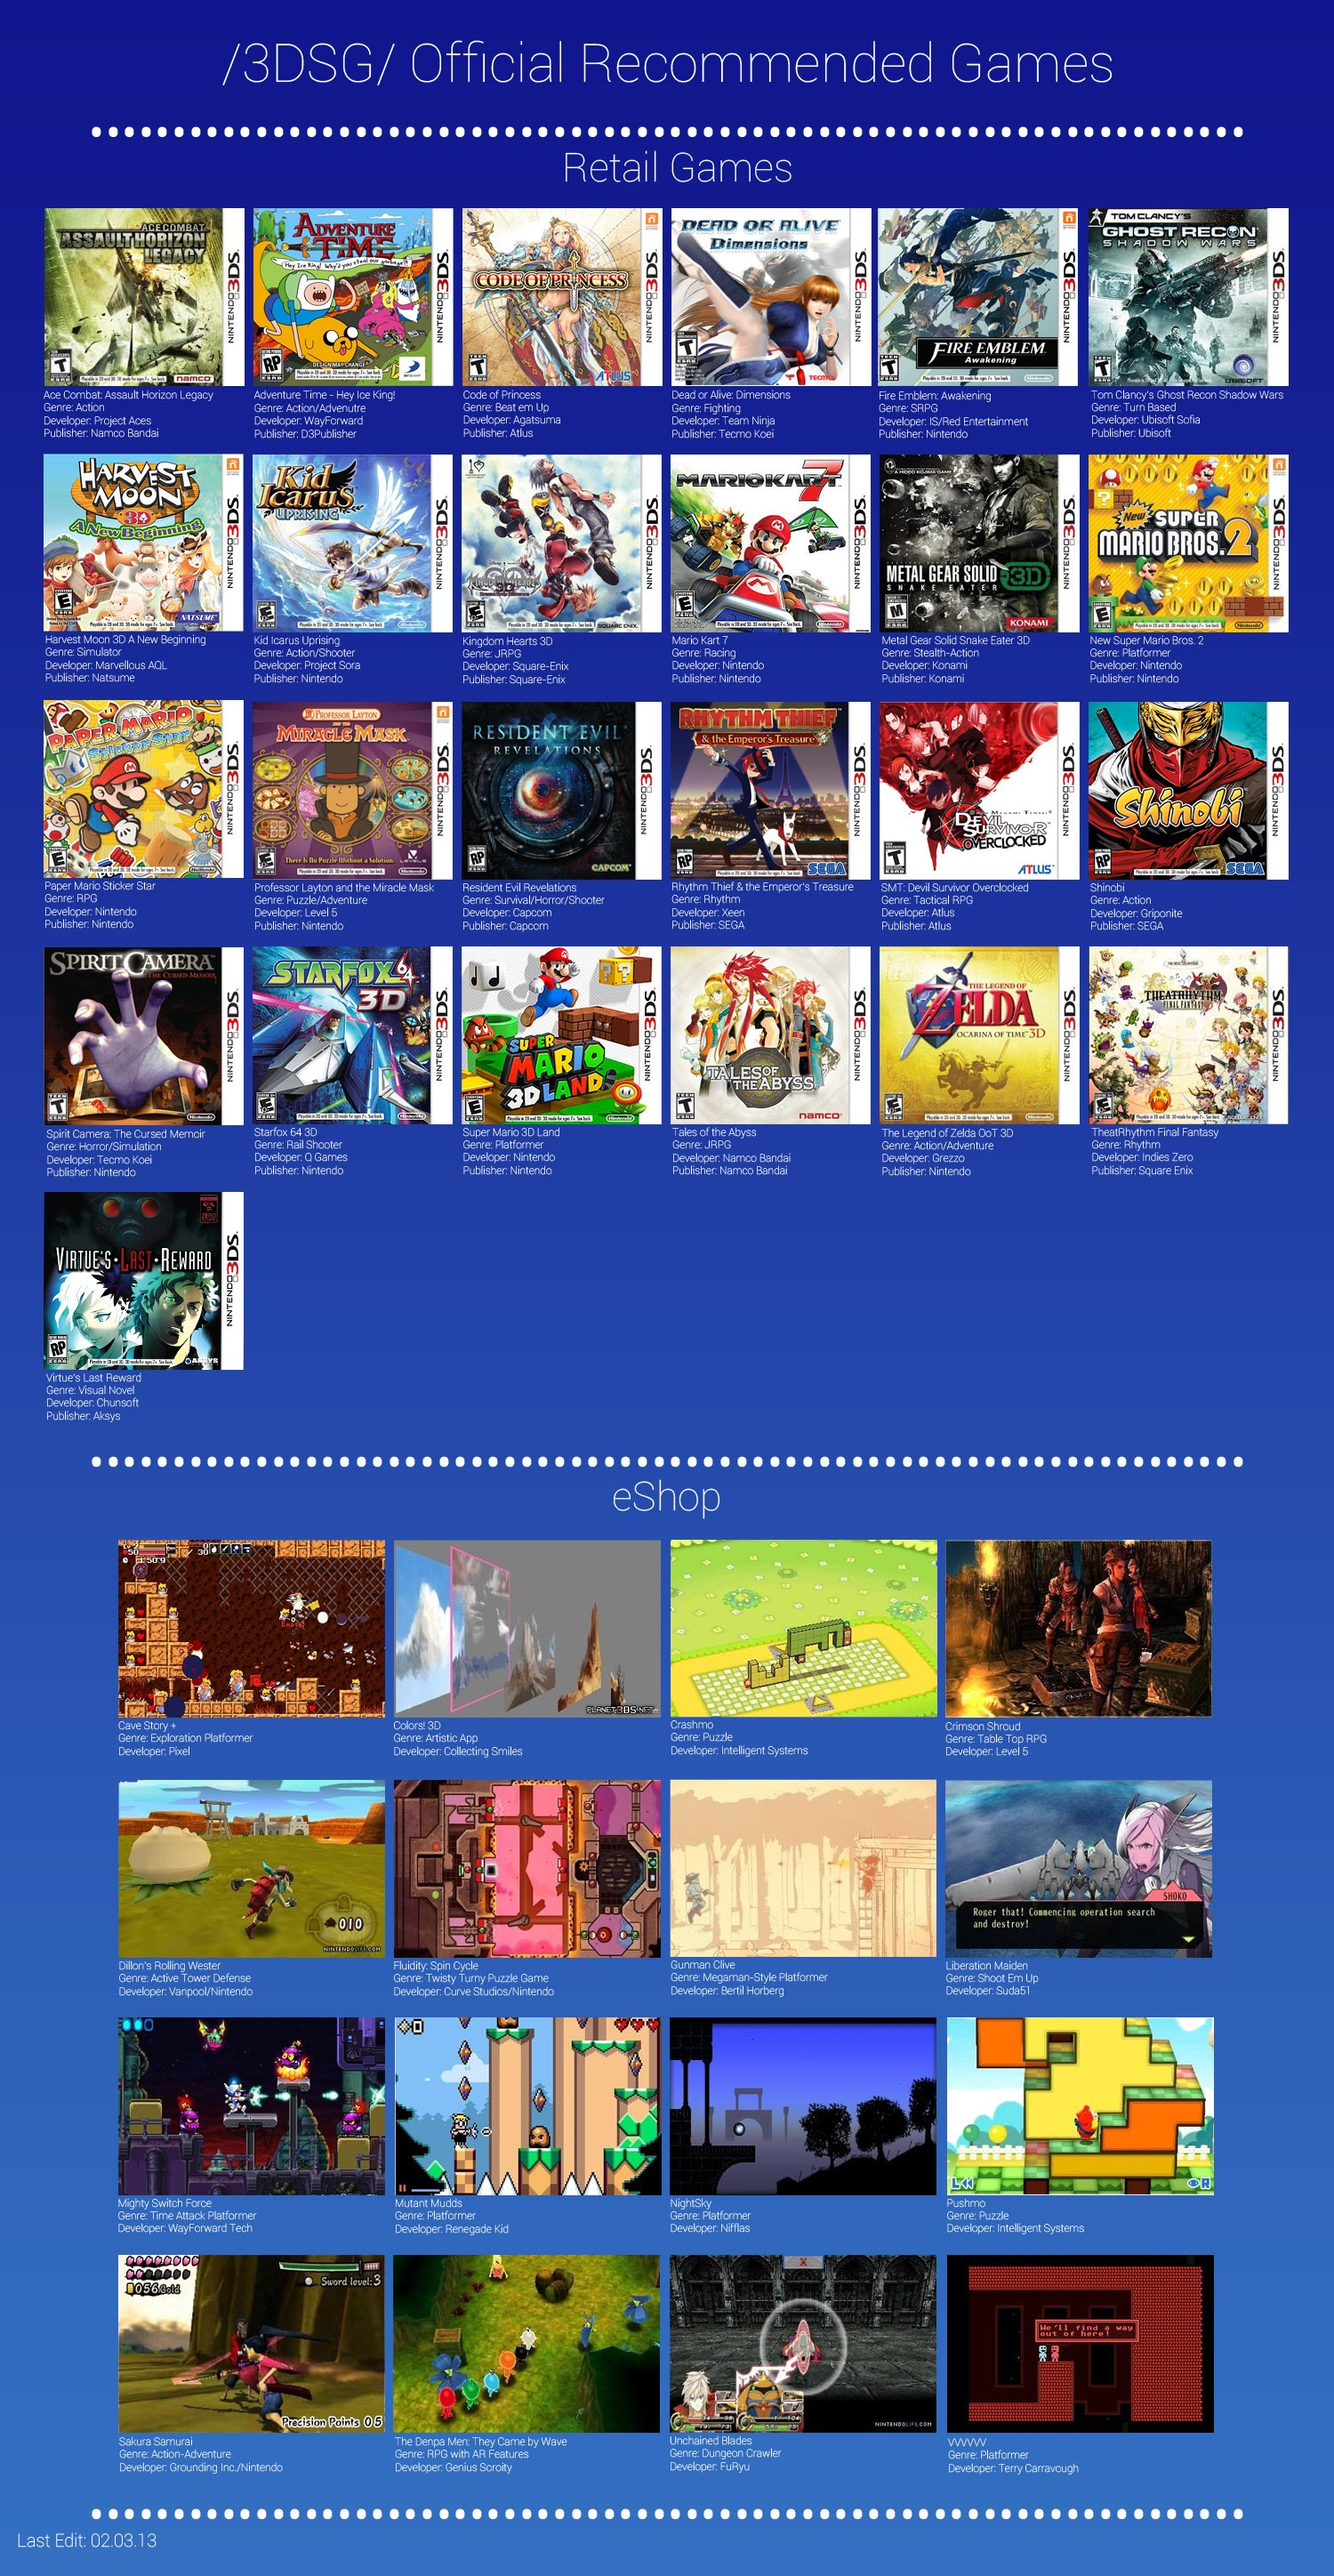 The best ds games for adults confirm. was